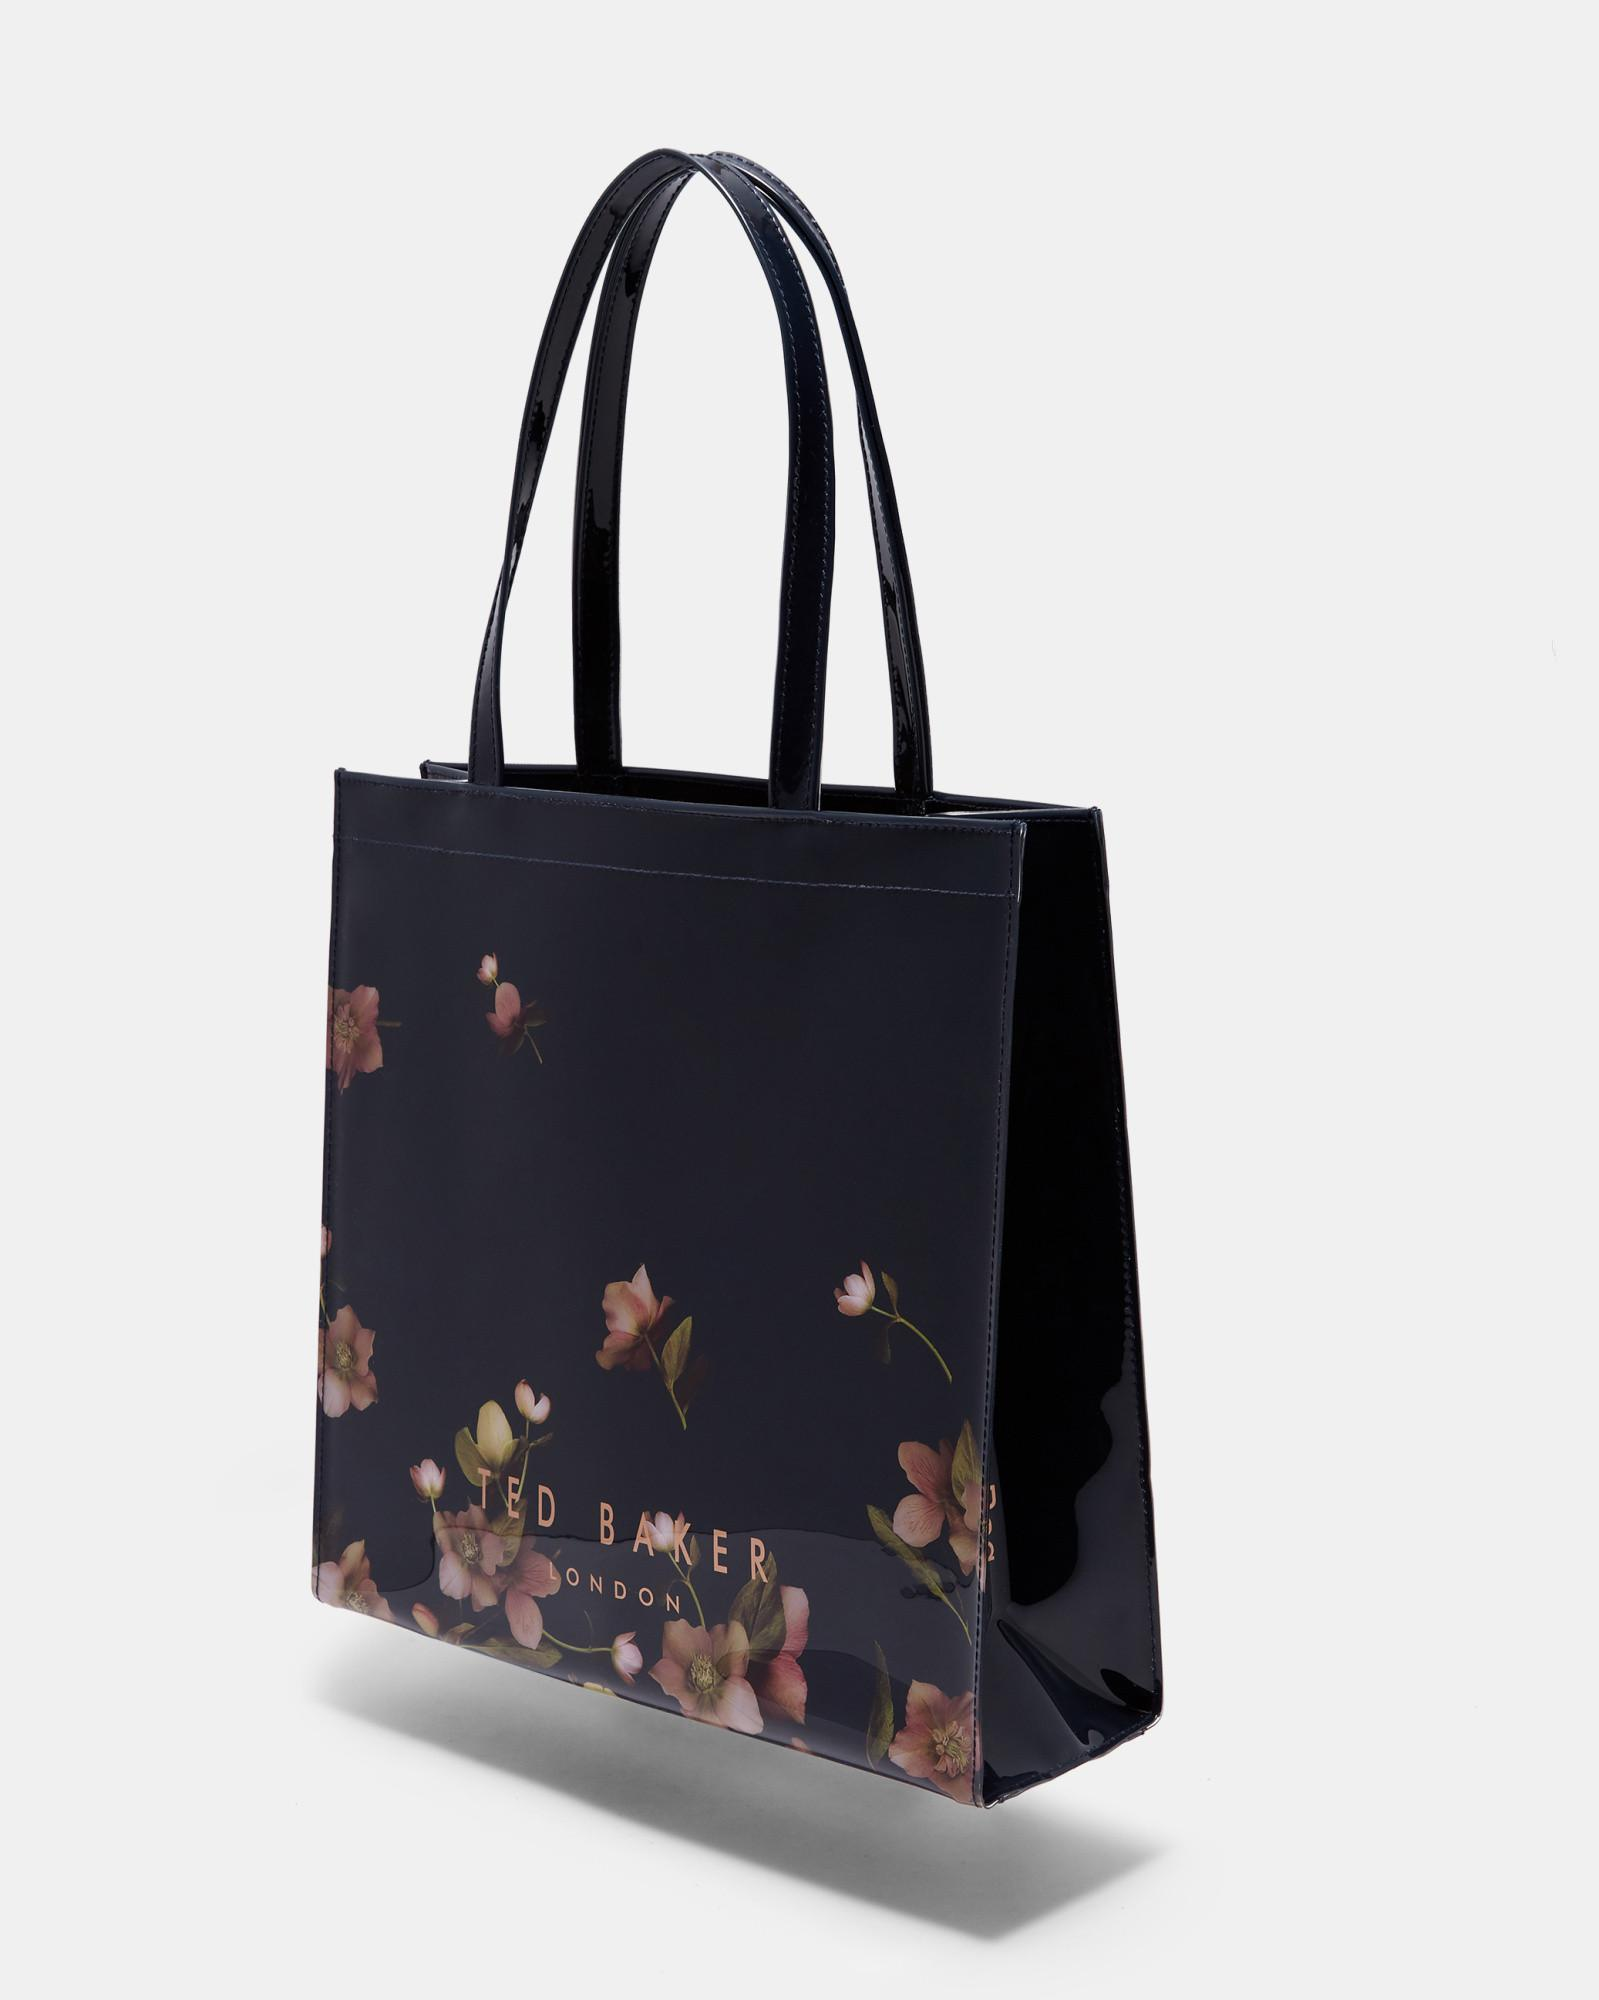 839be76de48a Ted Baker Arboretum Large Icon Bag in Blue - Lyst